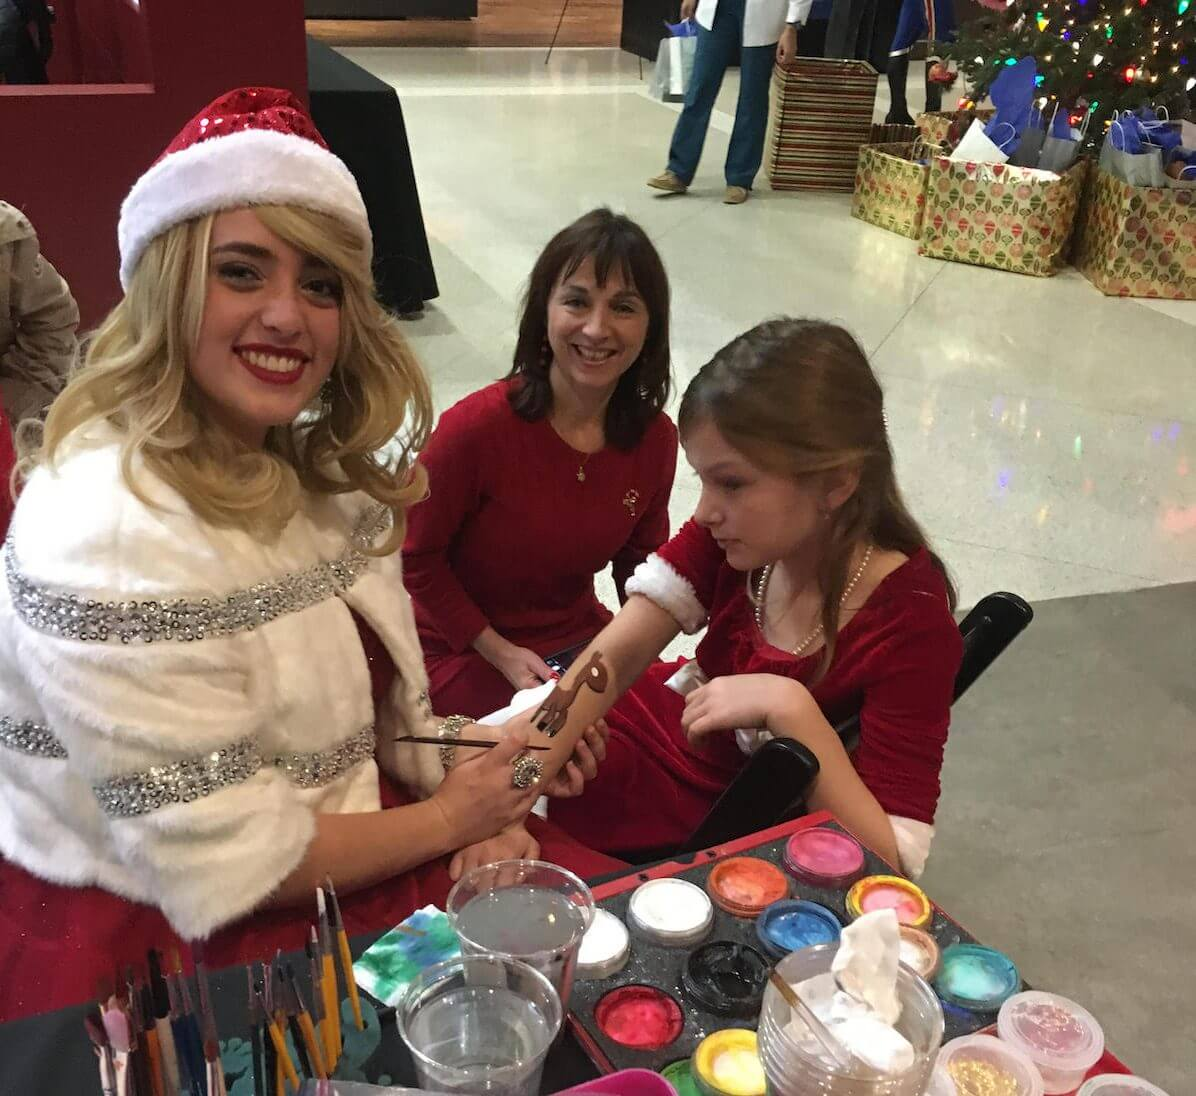 Guests were treated to face painting, balloon animals, music and more in addition to the check-ups.